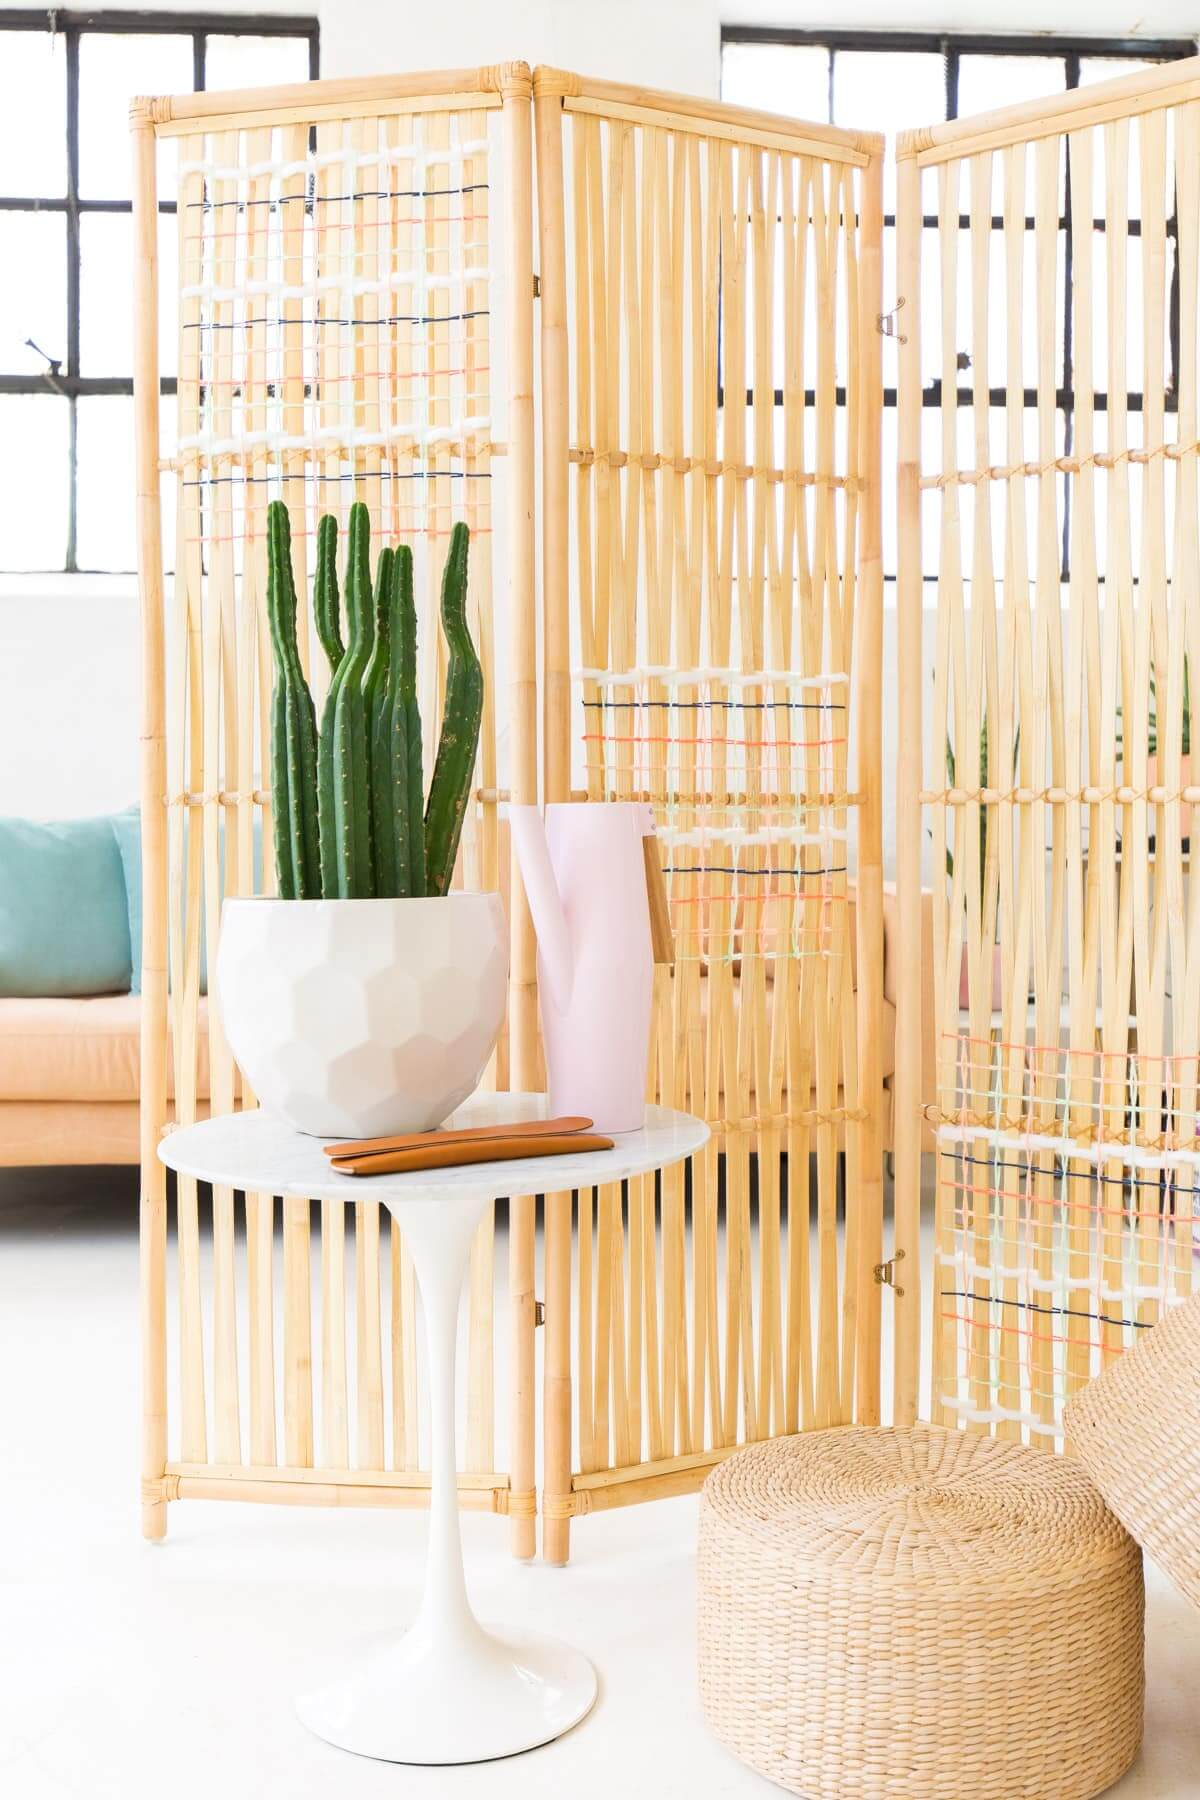 Customized Rattan Room Divider with Woven Pattern